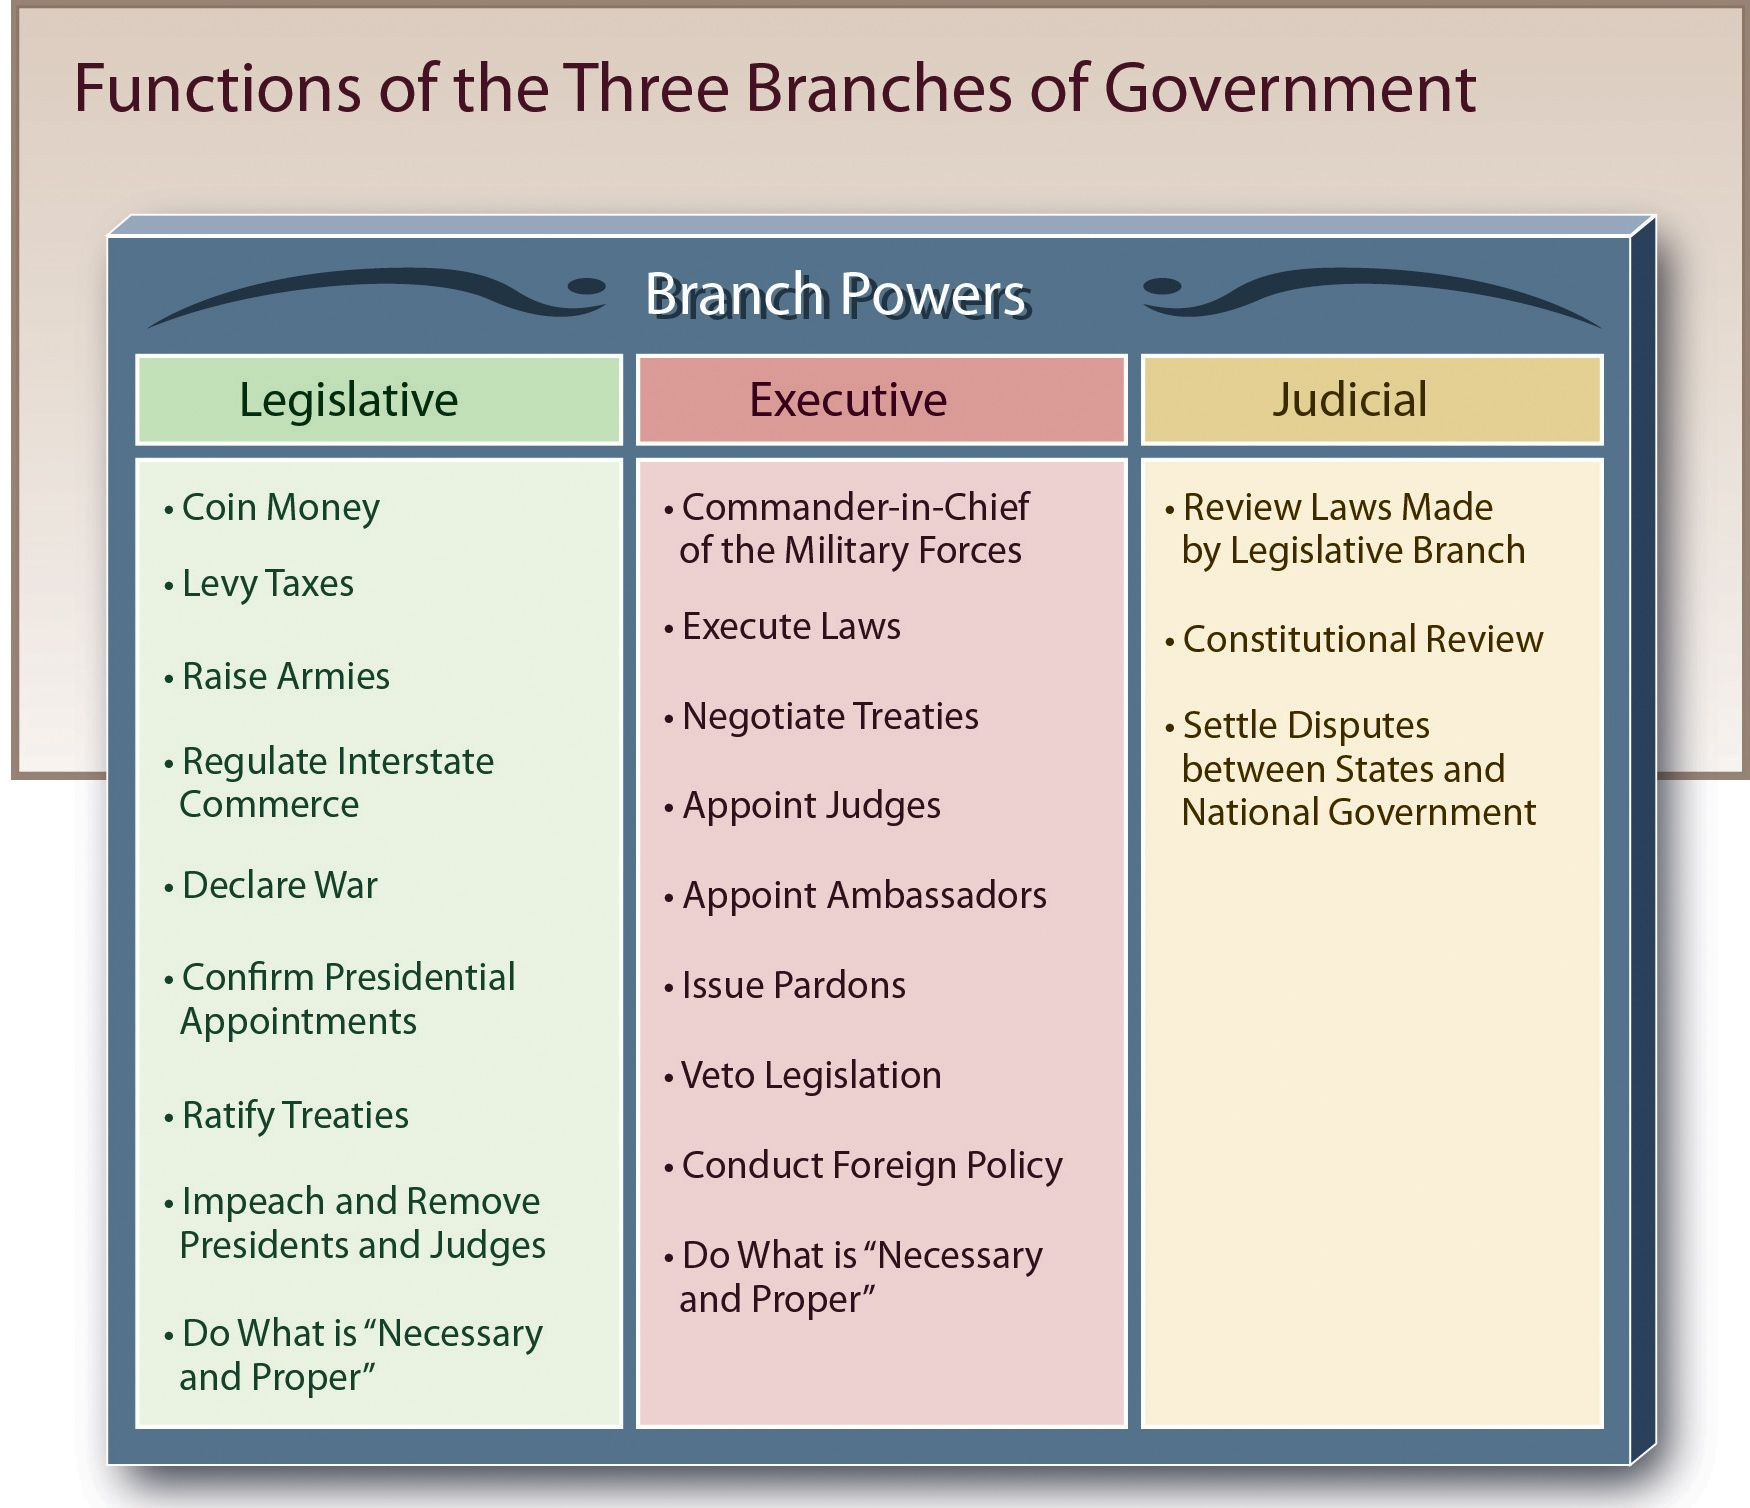 executive branch powers and functions